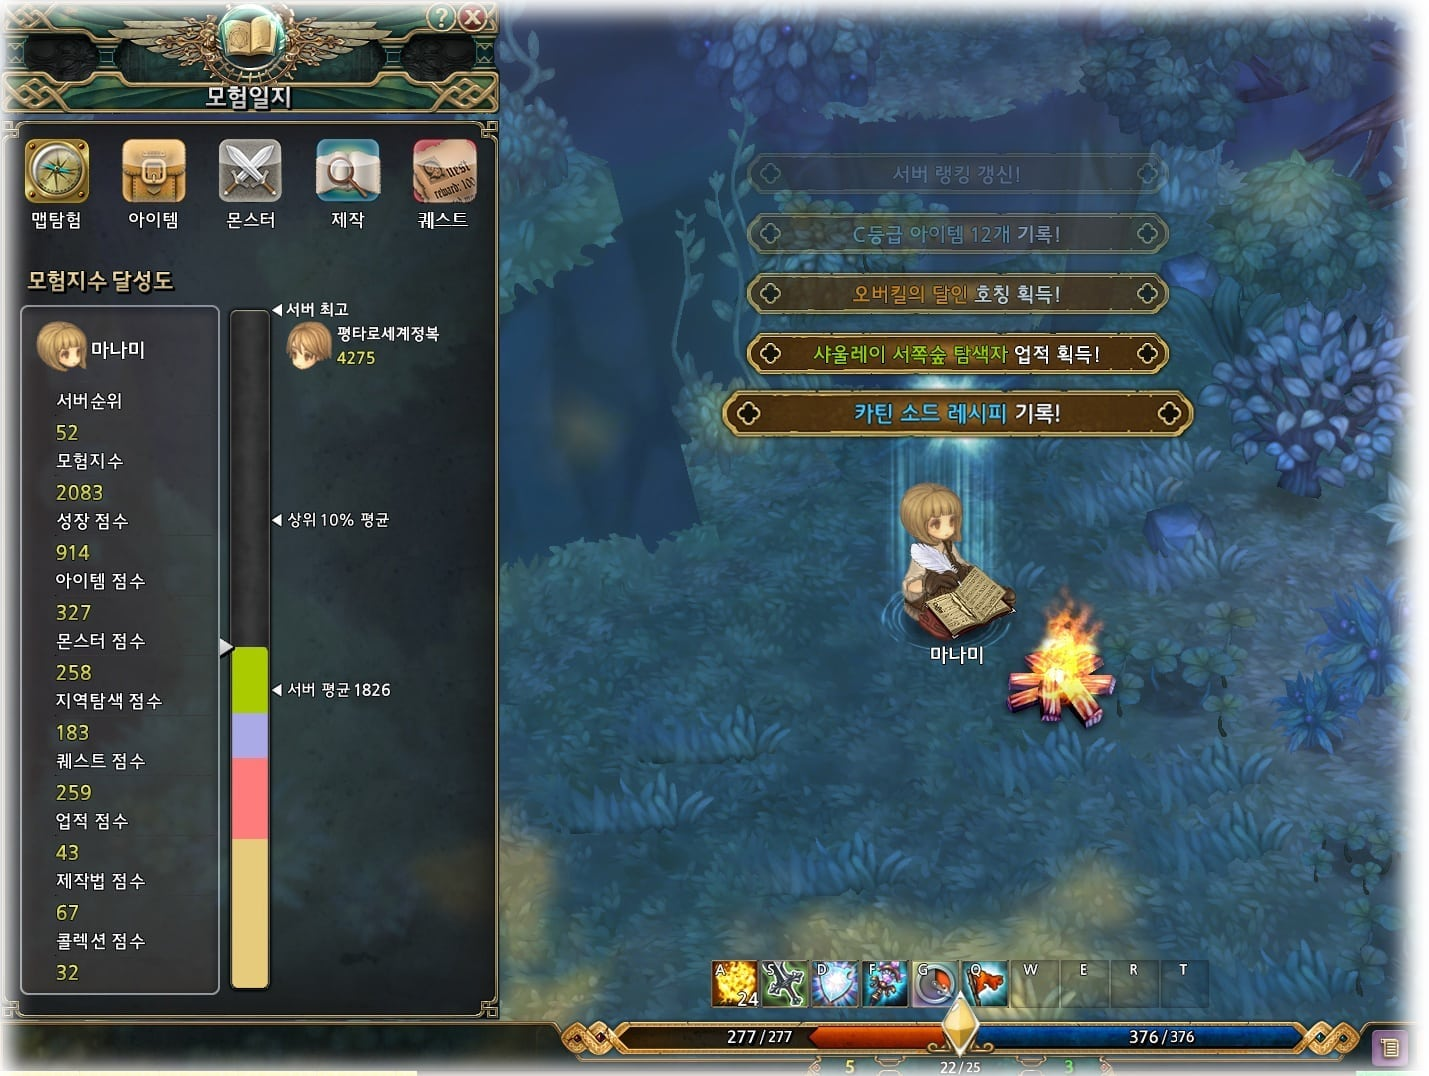 Tree of Savior - Adventure Journal